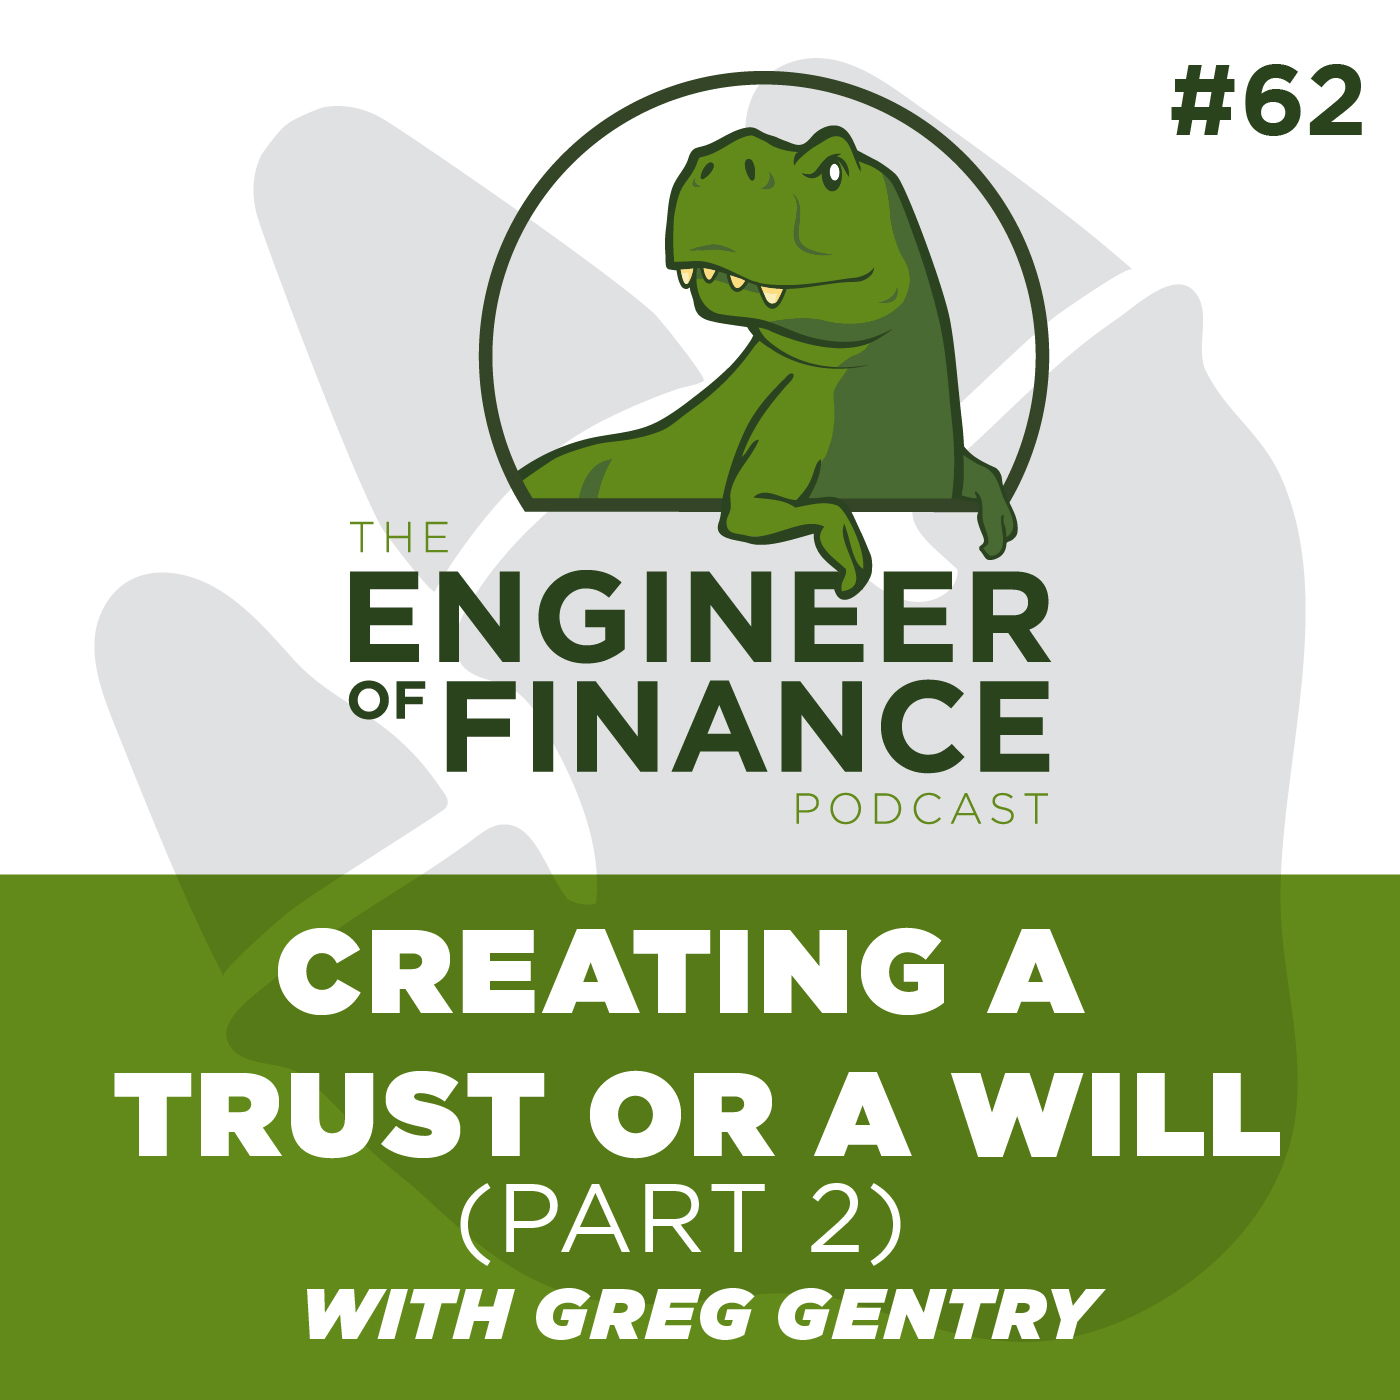 Creating A Trust Or A Will (Part 2) with Greg Gentry – Episode 62